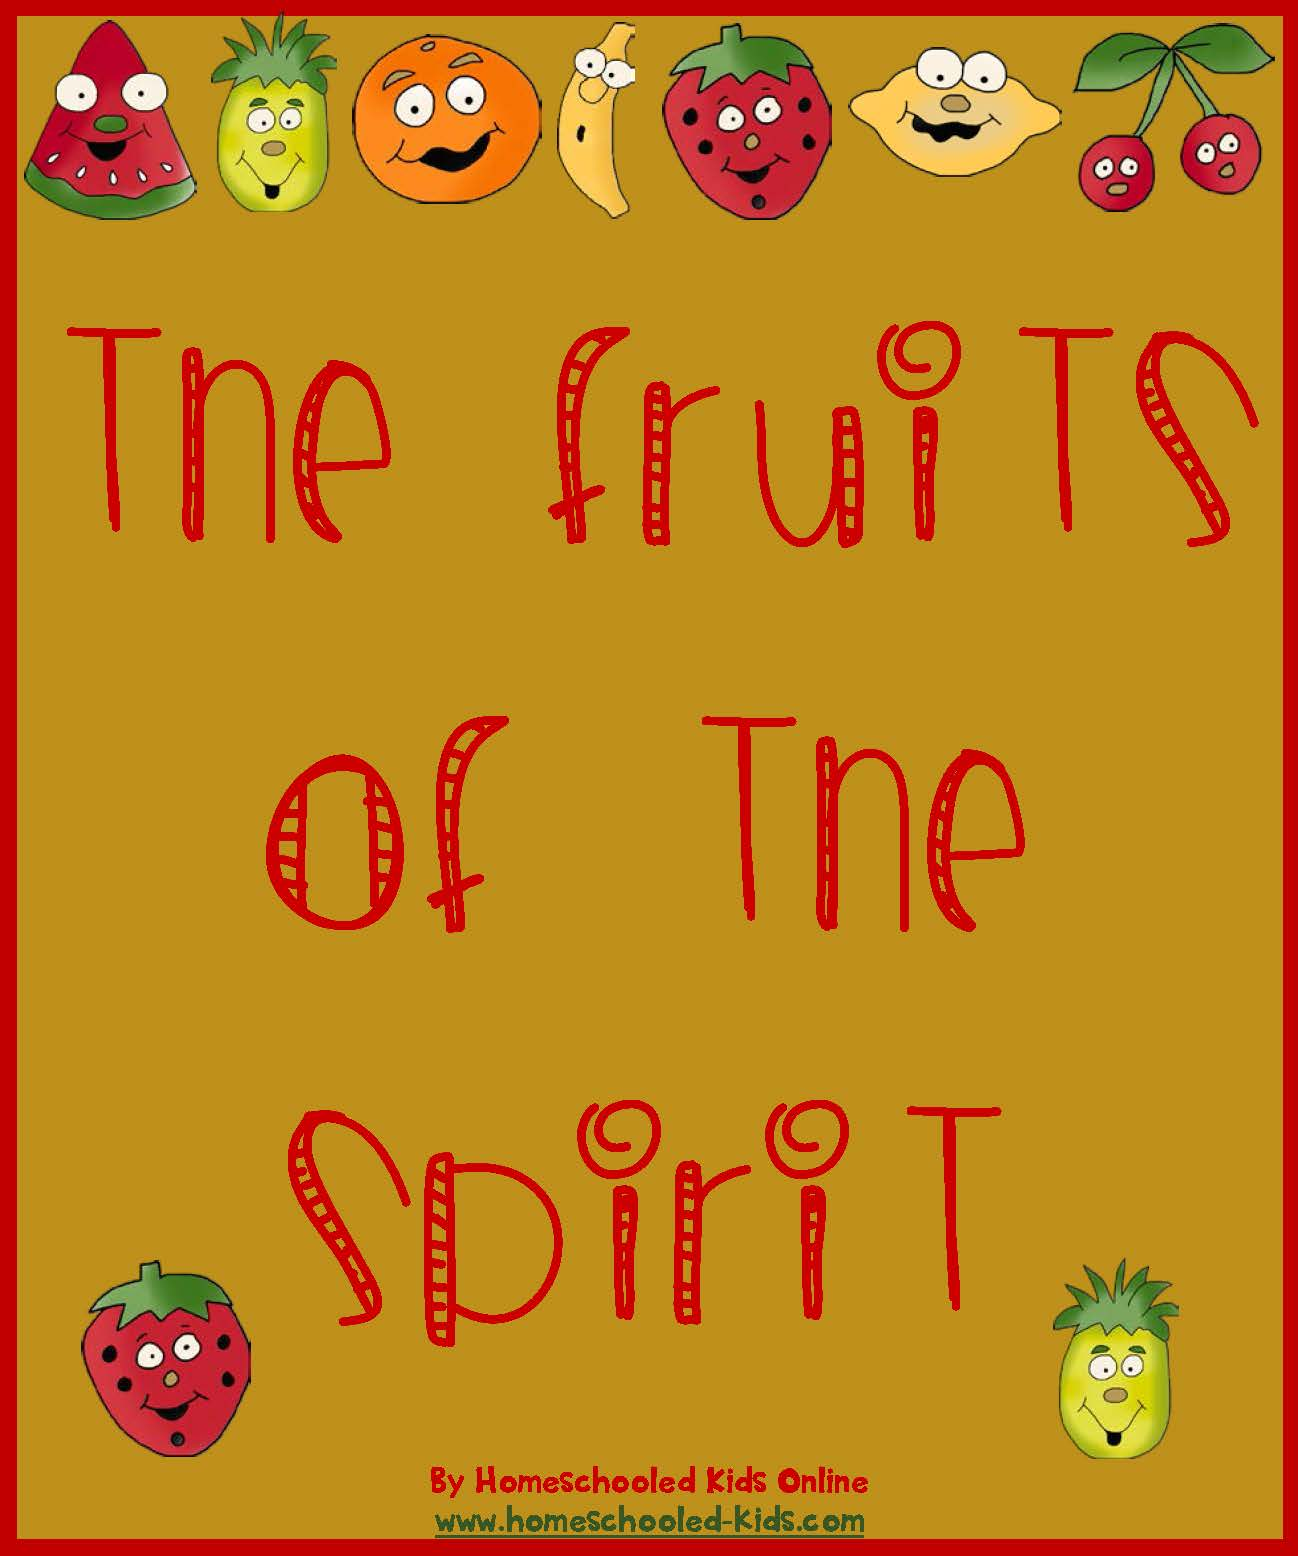 Fruits of the spirit homeschooled kids online for Fruit of the spirit goodness craft